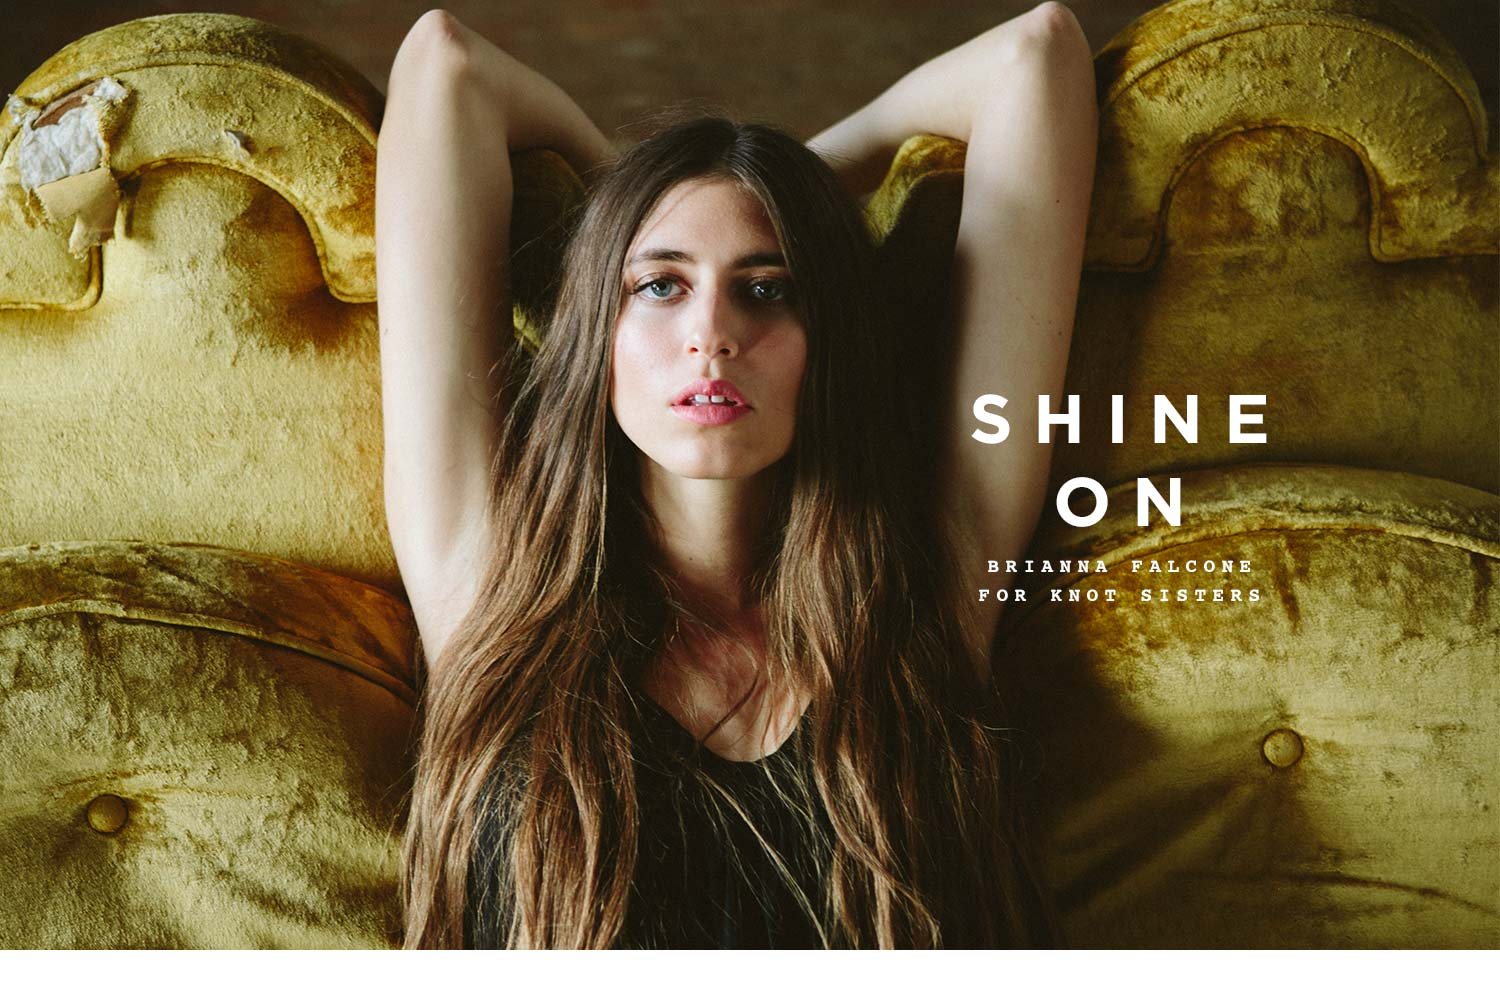 Shine On - Brianna Falcone Knot Sisters Holiday '16